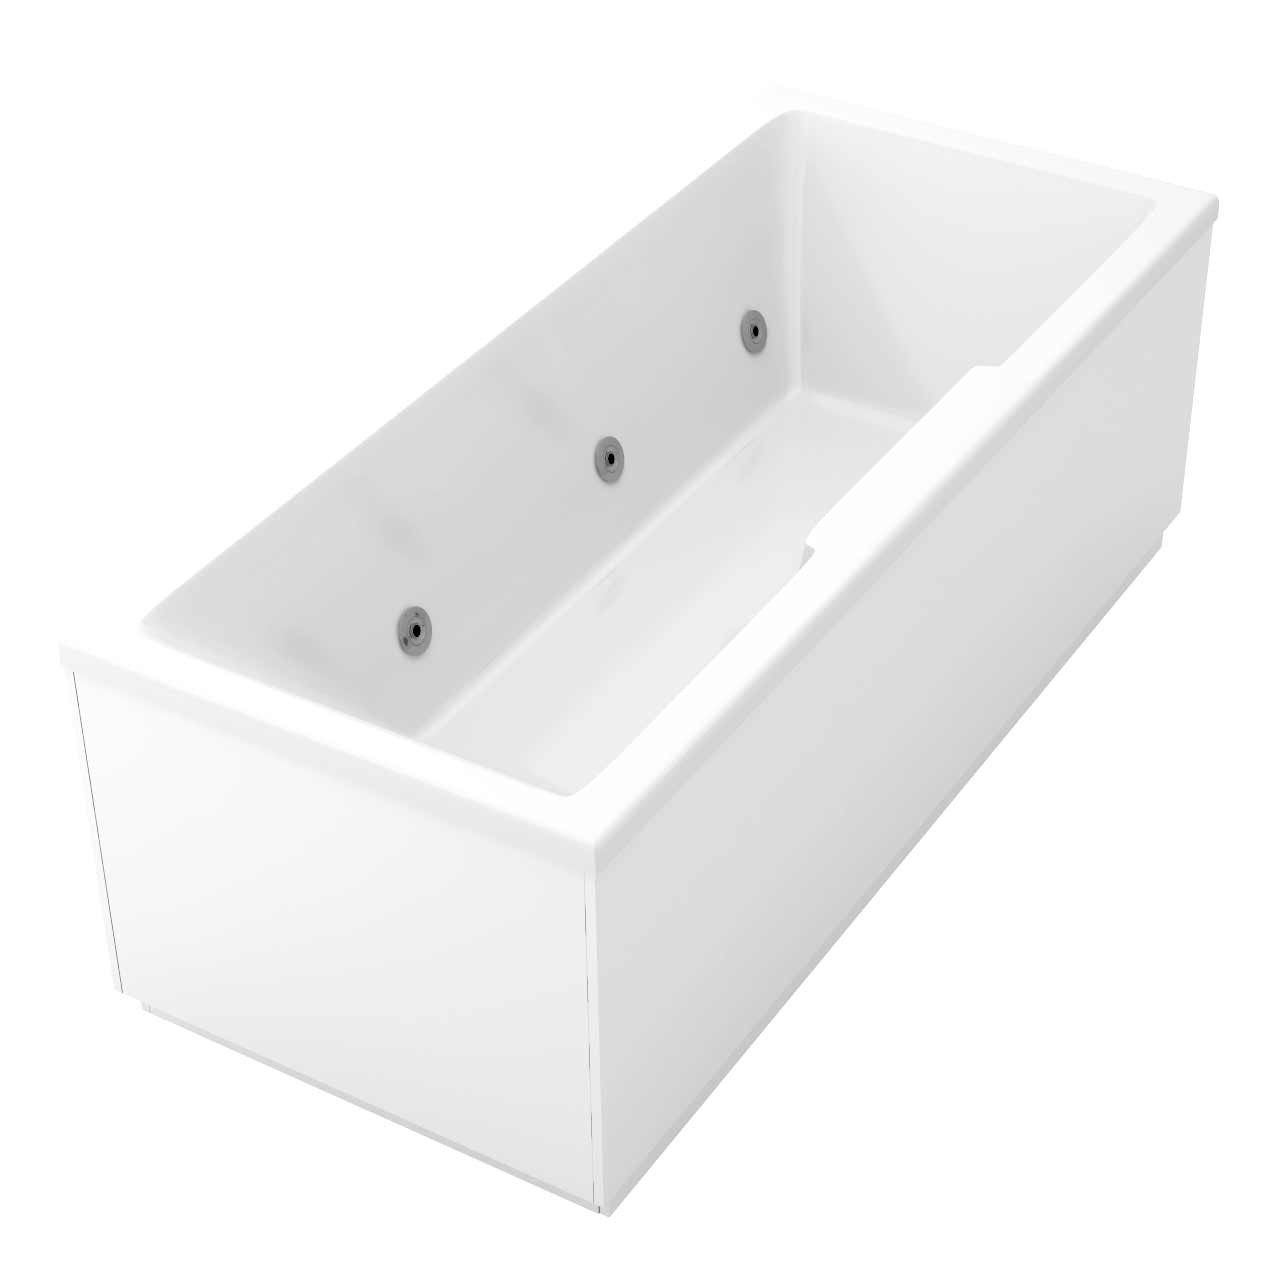 Legend Left Hand 6 Jet Chrome Flat Jet Whirlpool Bath 1600x700mm